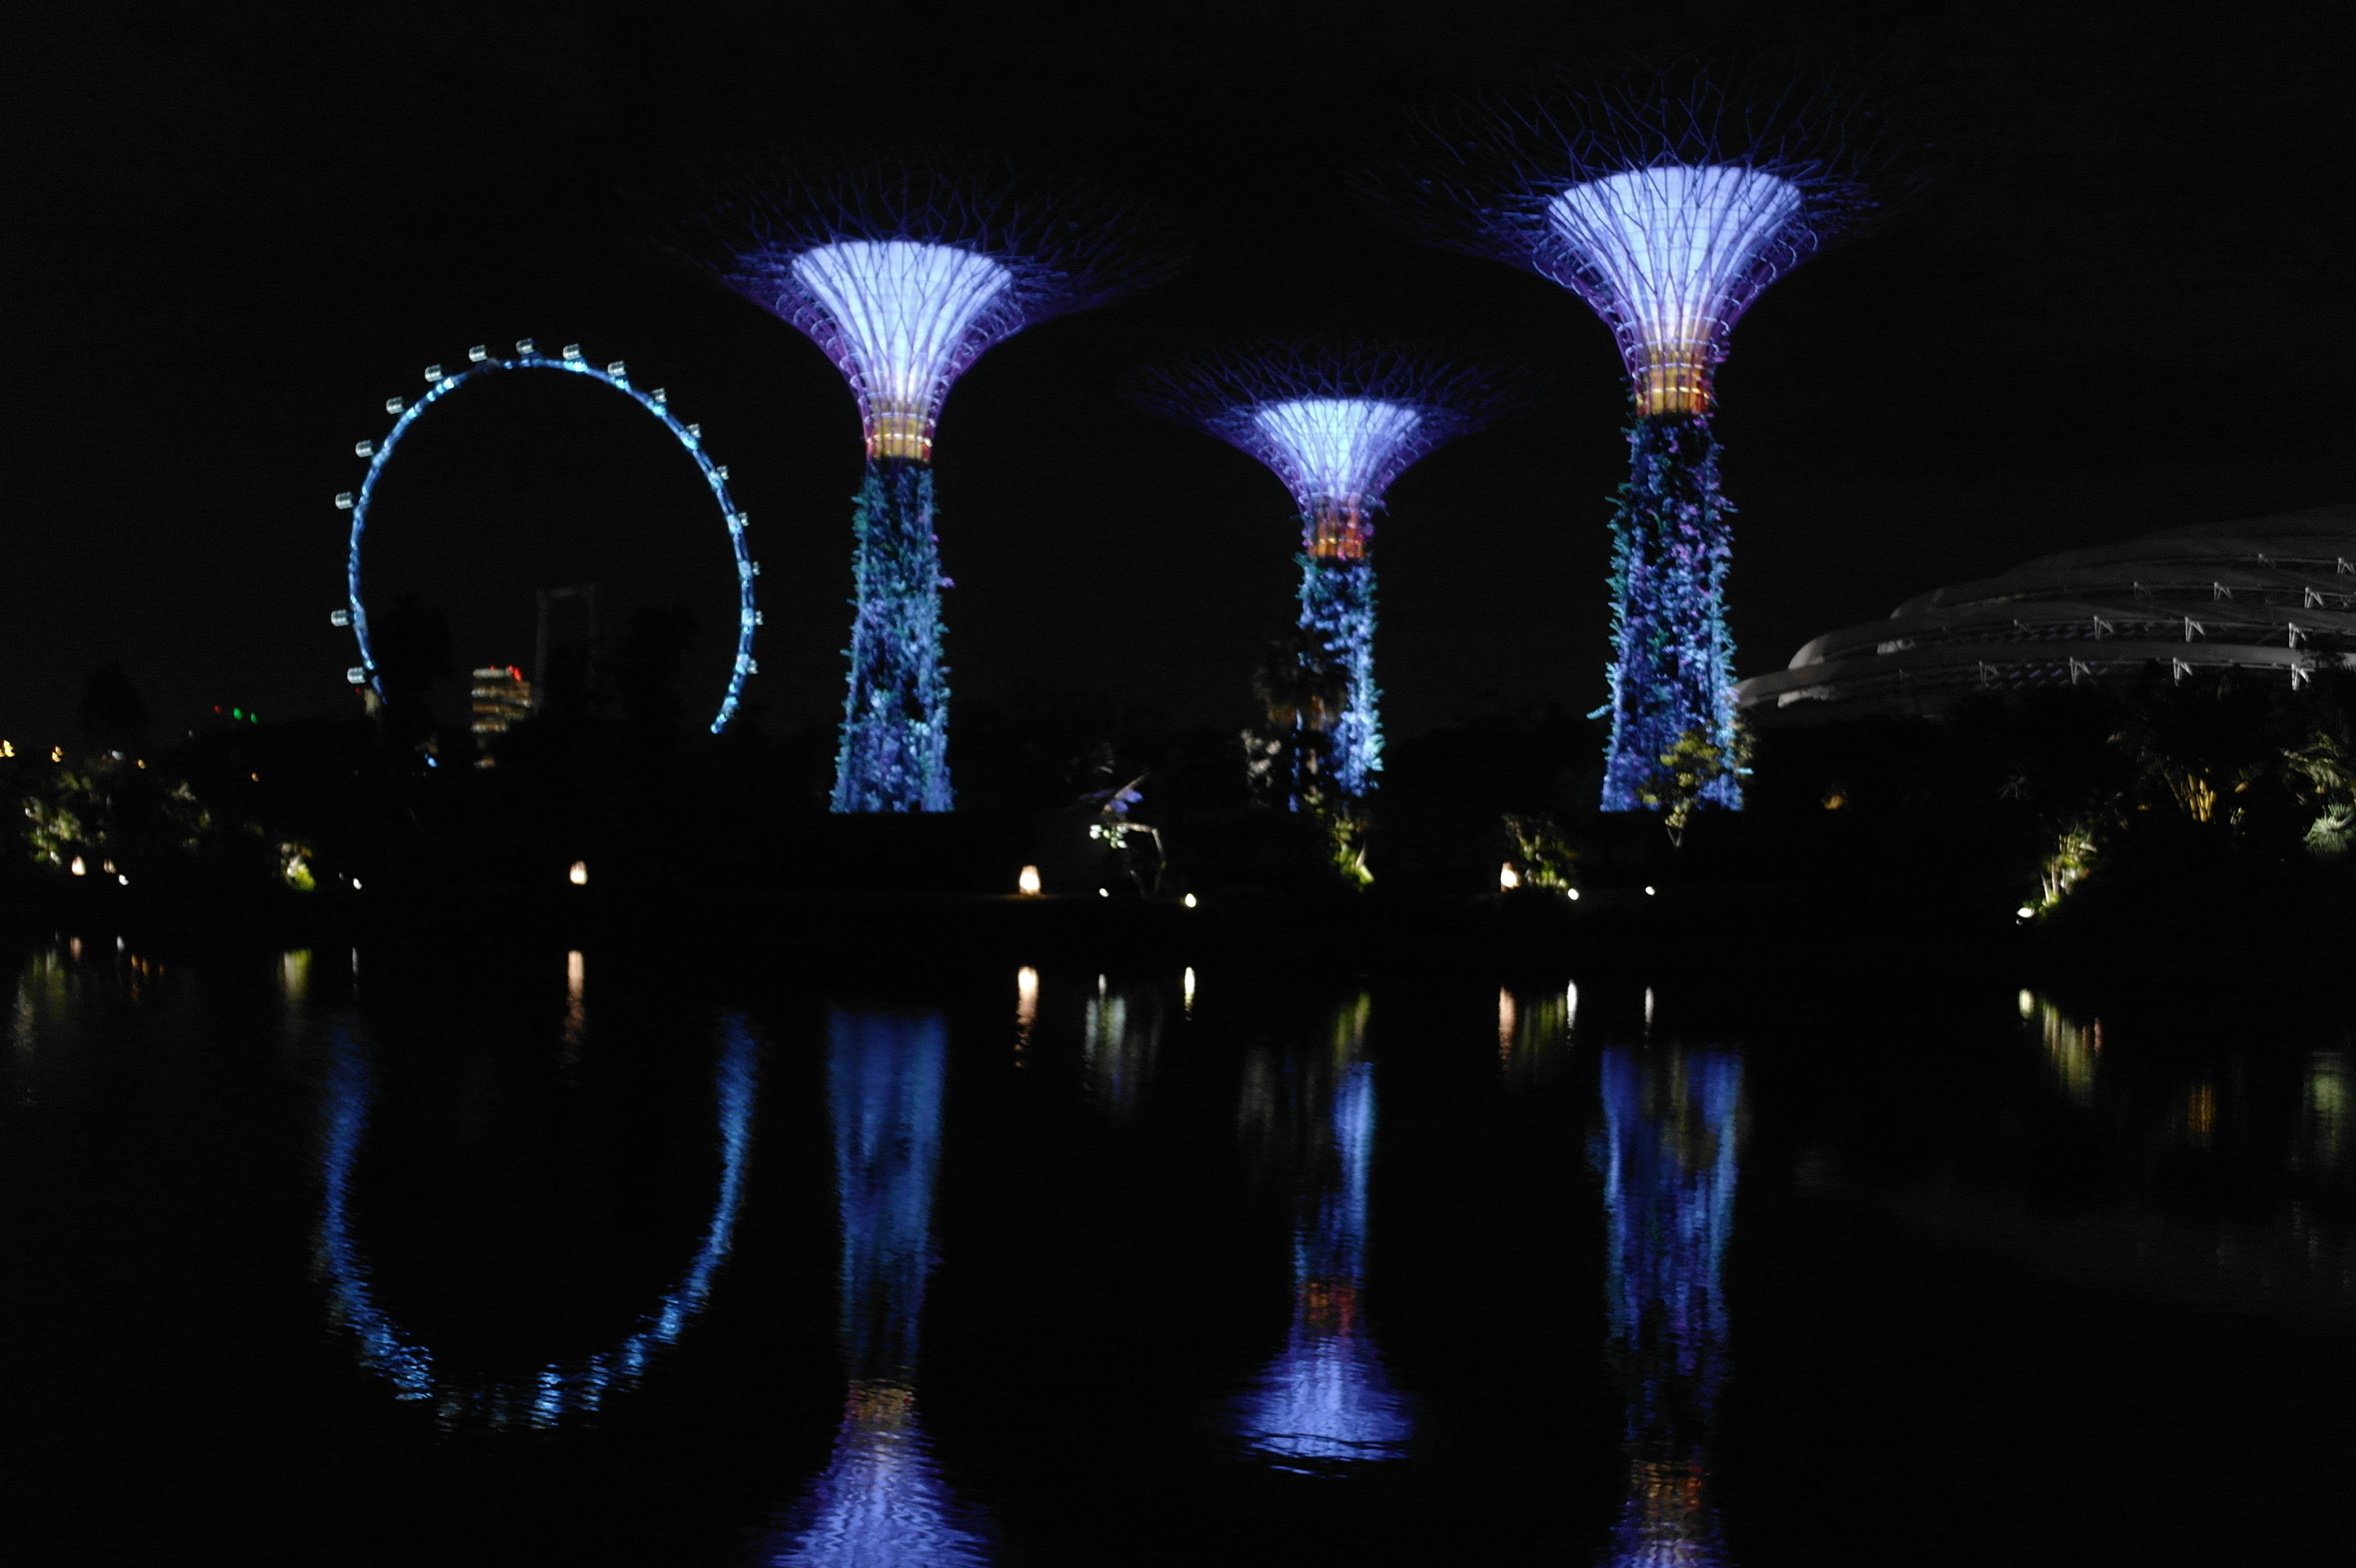 Gardens by the bay Singapore Flyer nightview